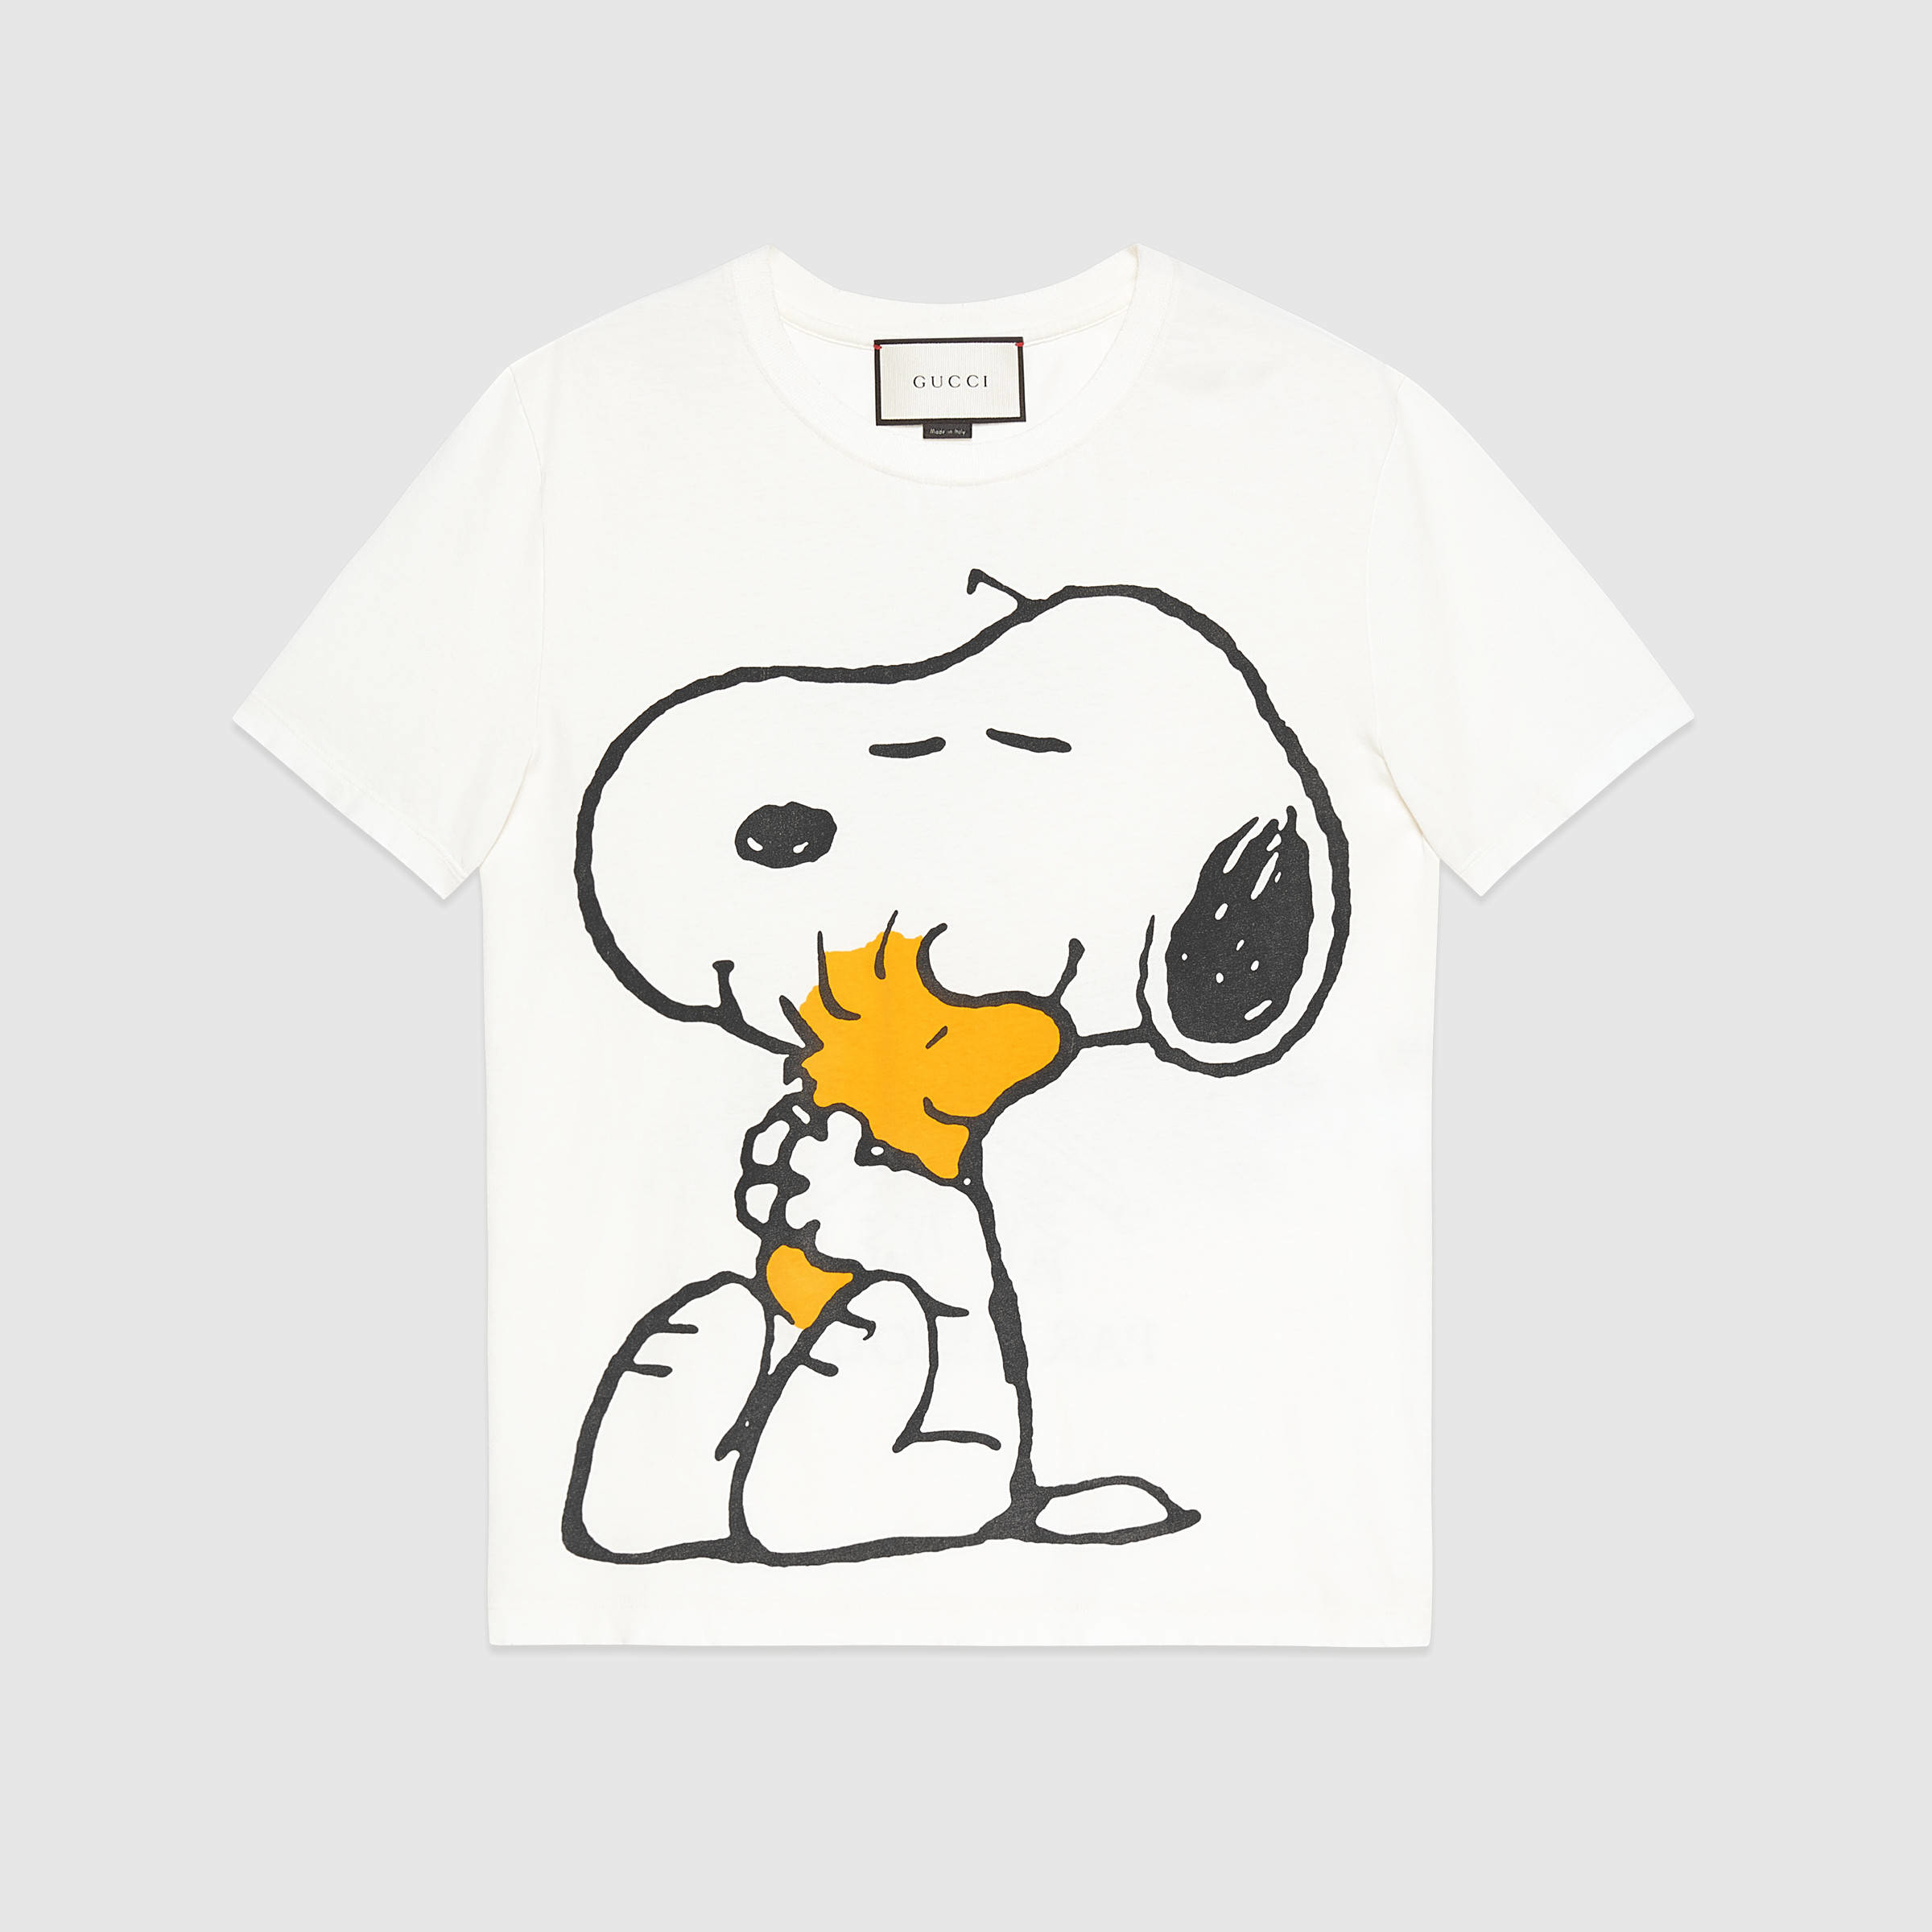 bc95e4941d8 Lyst - Gucci Washed T-shirt With Peanuts Print in White for Men